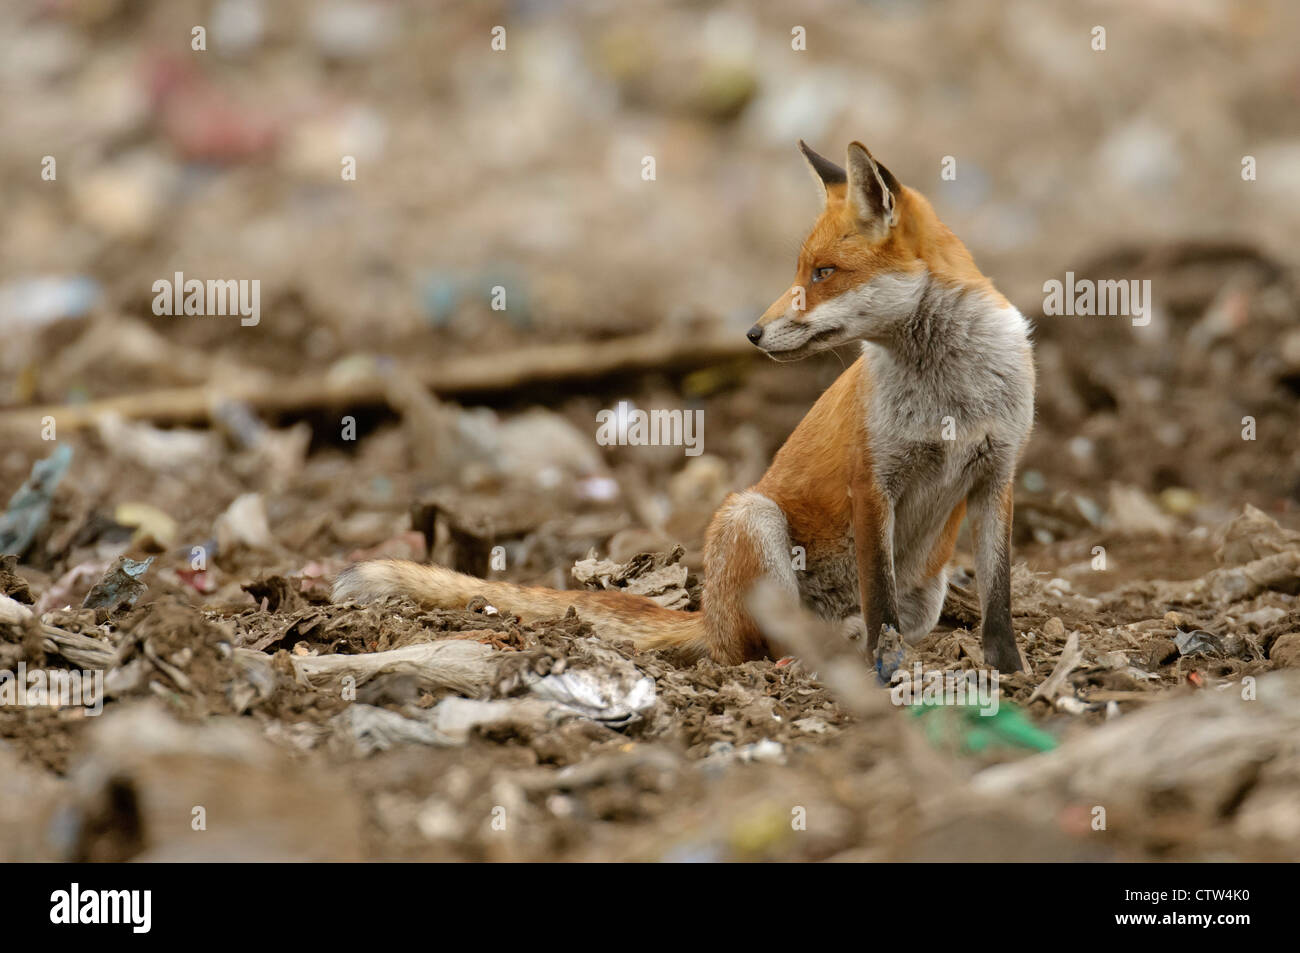 Red fox (Vulpes vulpes) scavenging at landfill site in Essex. August 2011. - Stock Image